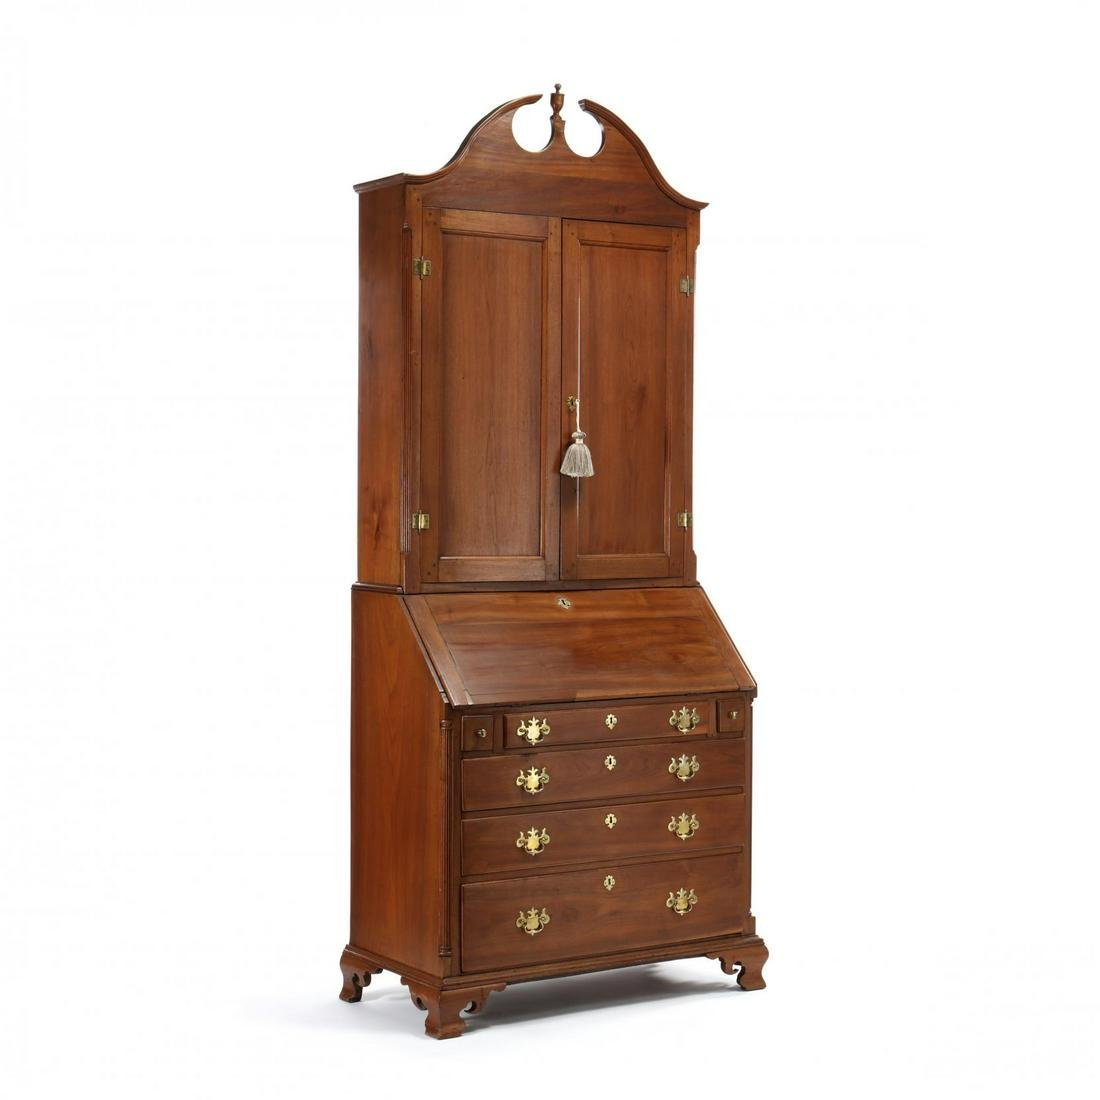 Southern Chippendale Walnut Desk and Bookcase